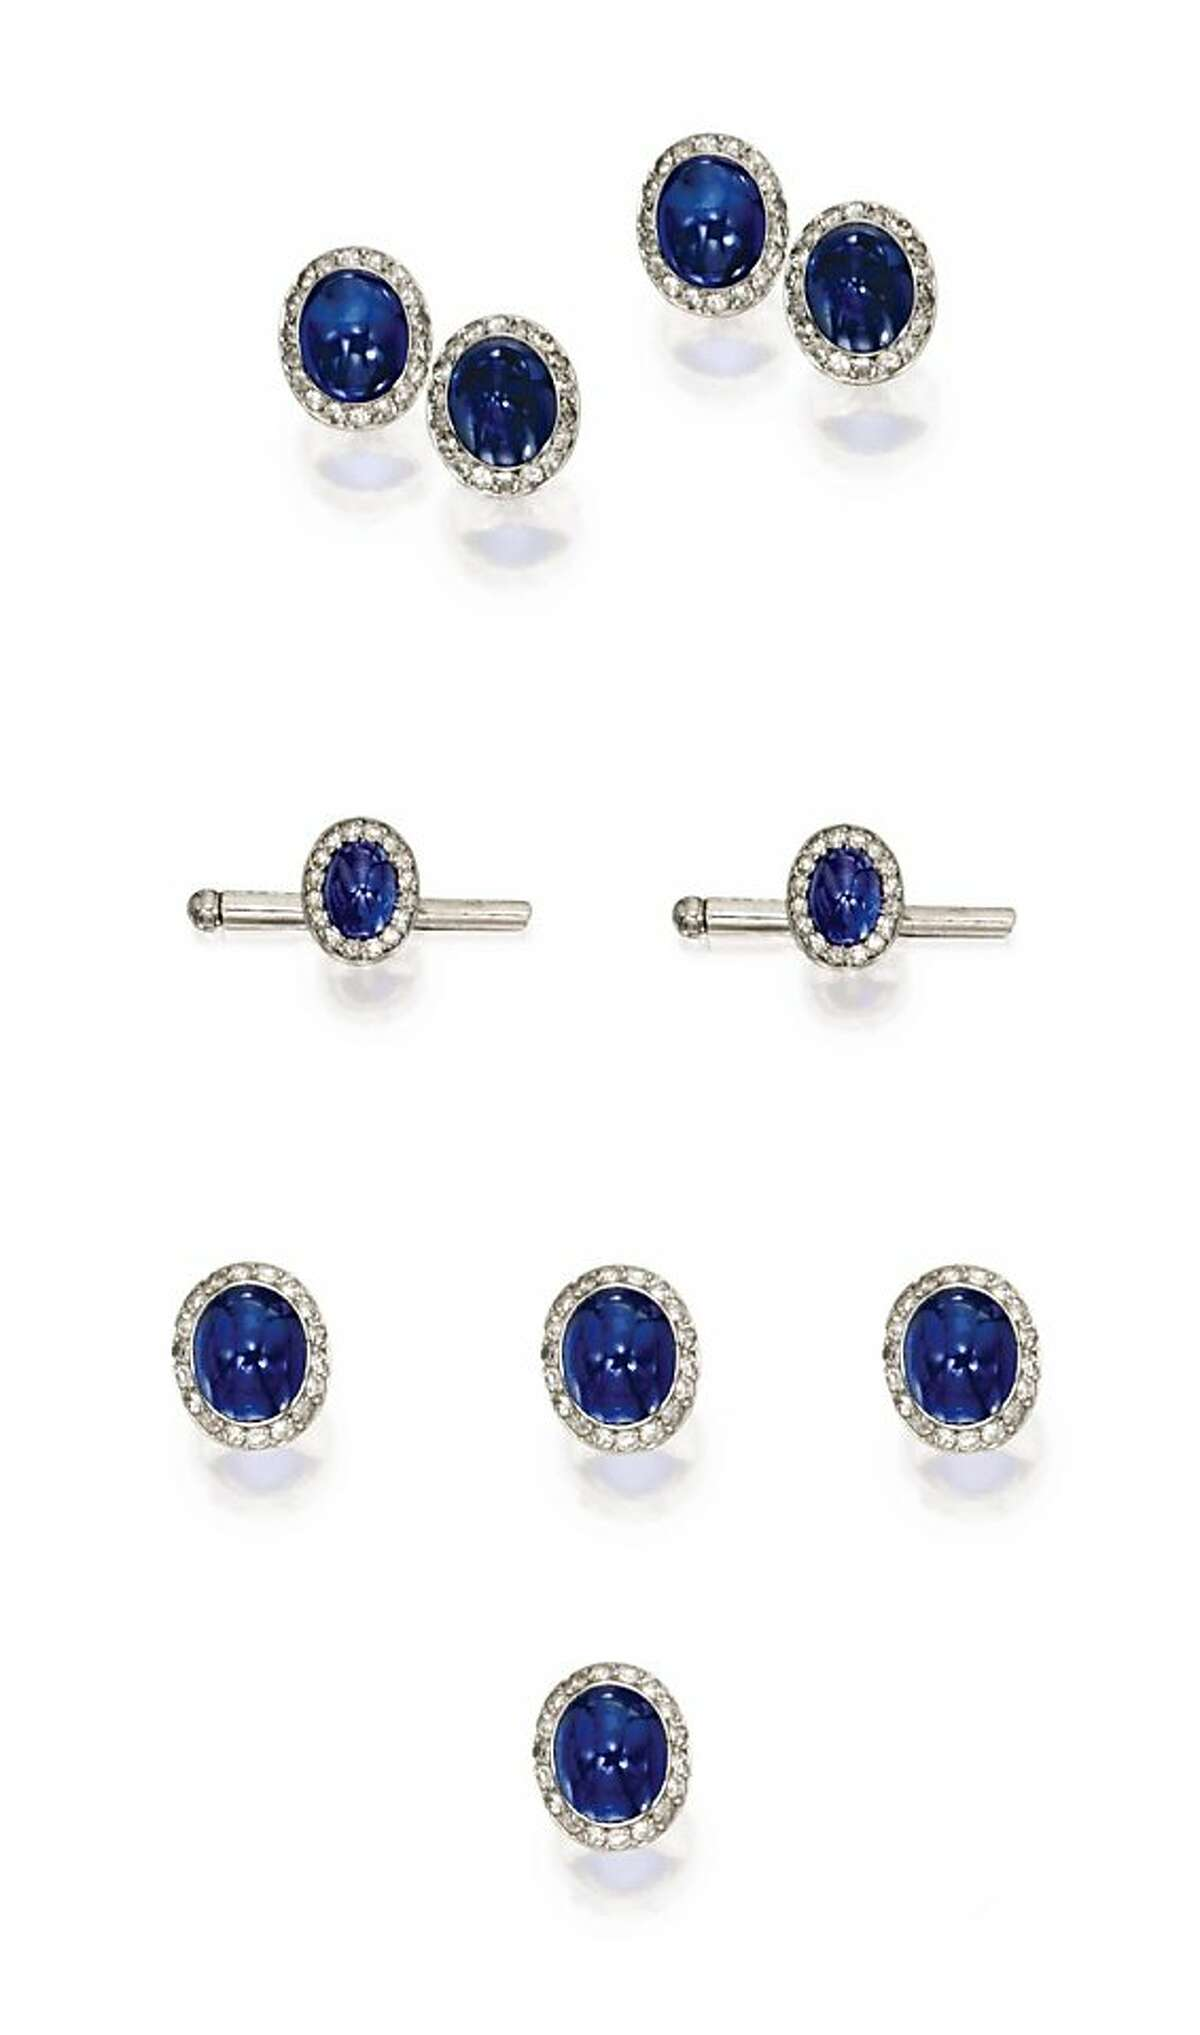 This platinum and cabochon sapphire and diamond dress set (cufflinks, tie pin) owned by the late John Traina was valued at $10,000 to $15,000 and sold at auction at Sothbey's in New York to an anonymous bidder for $182,500 on Dec. 7, 2011.